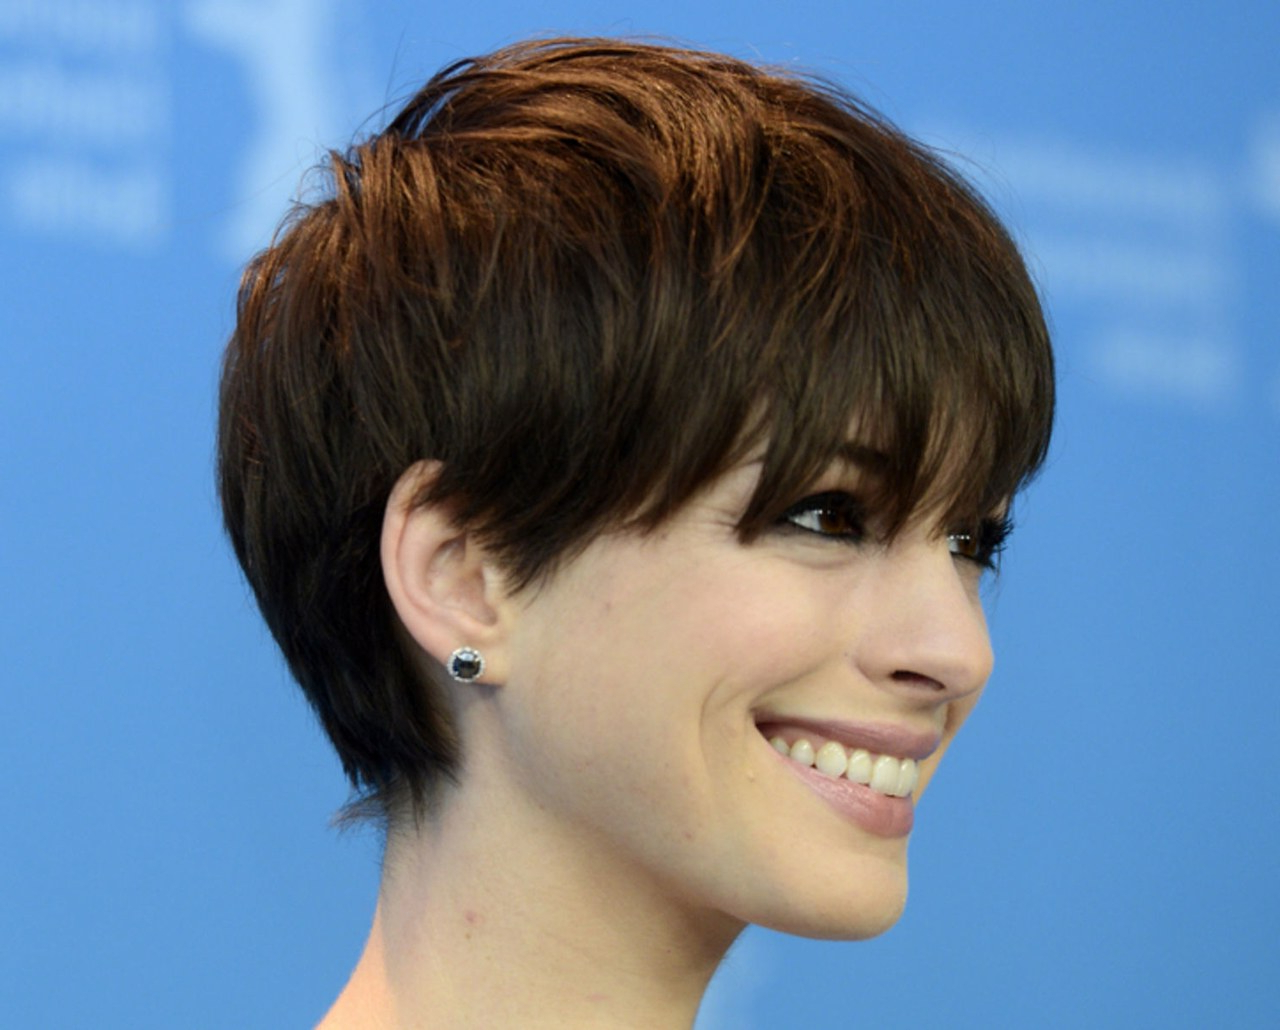 Anne Hathaway Has The Best Bangs I've Seen In A Long Time | Glamour Regarding Anne Hathaway Short Hairstyles (Gallery 21 of 25)